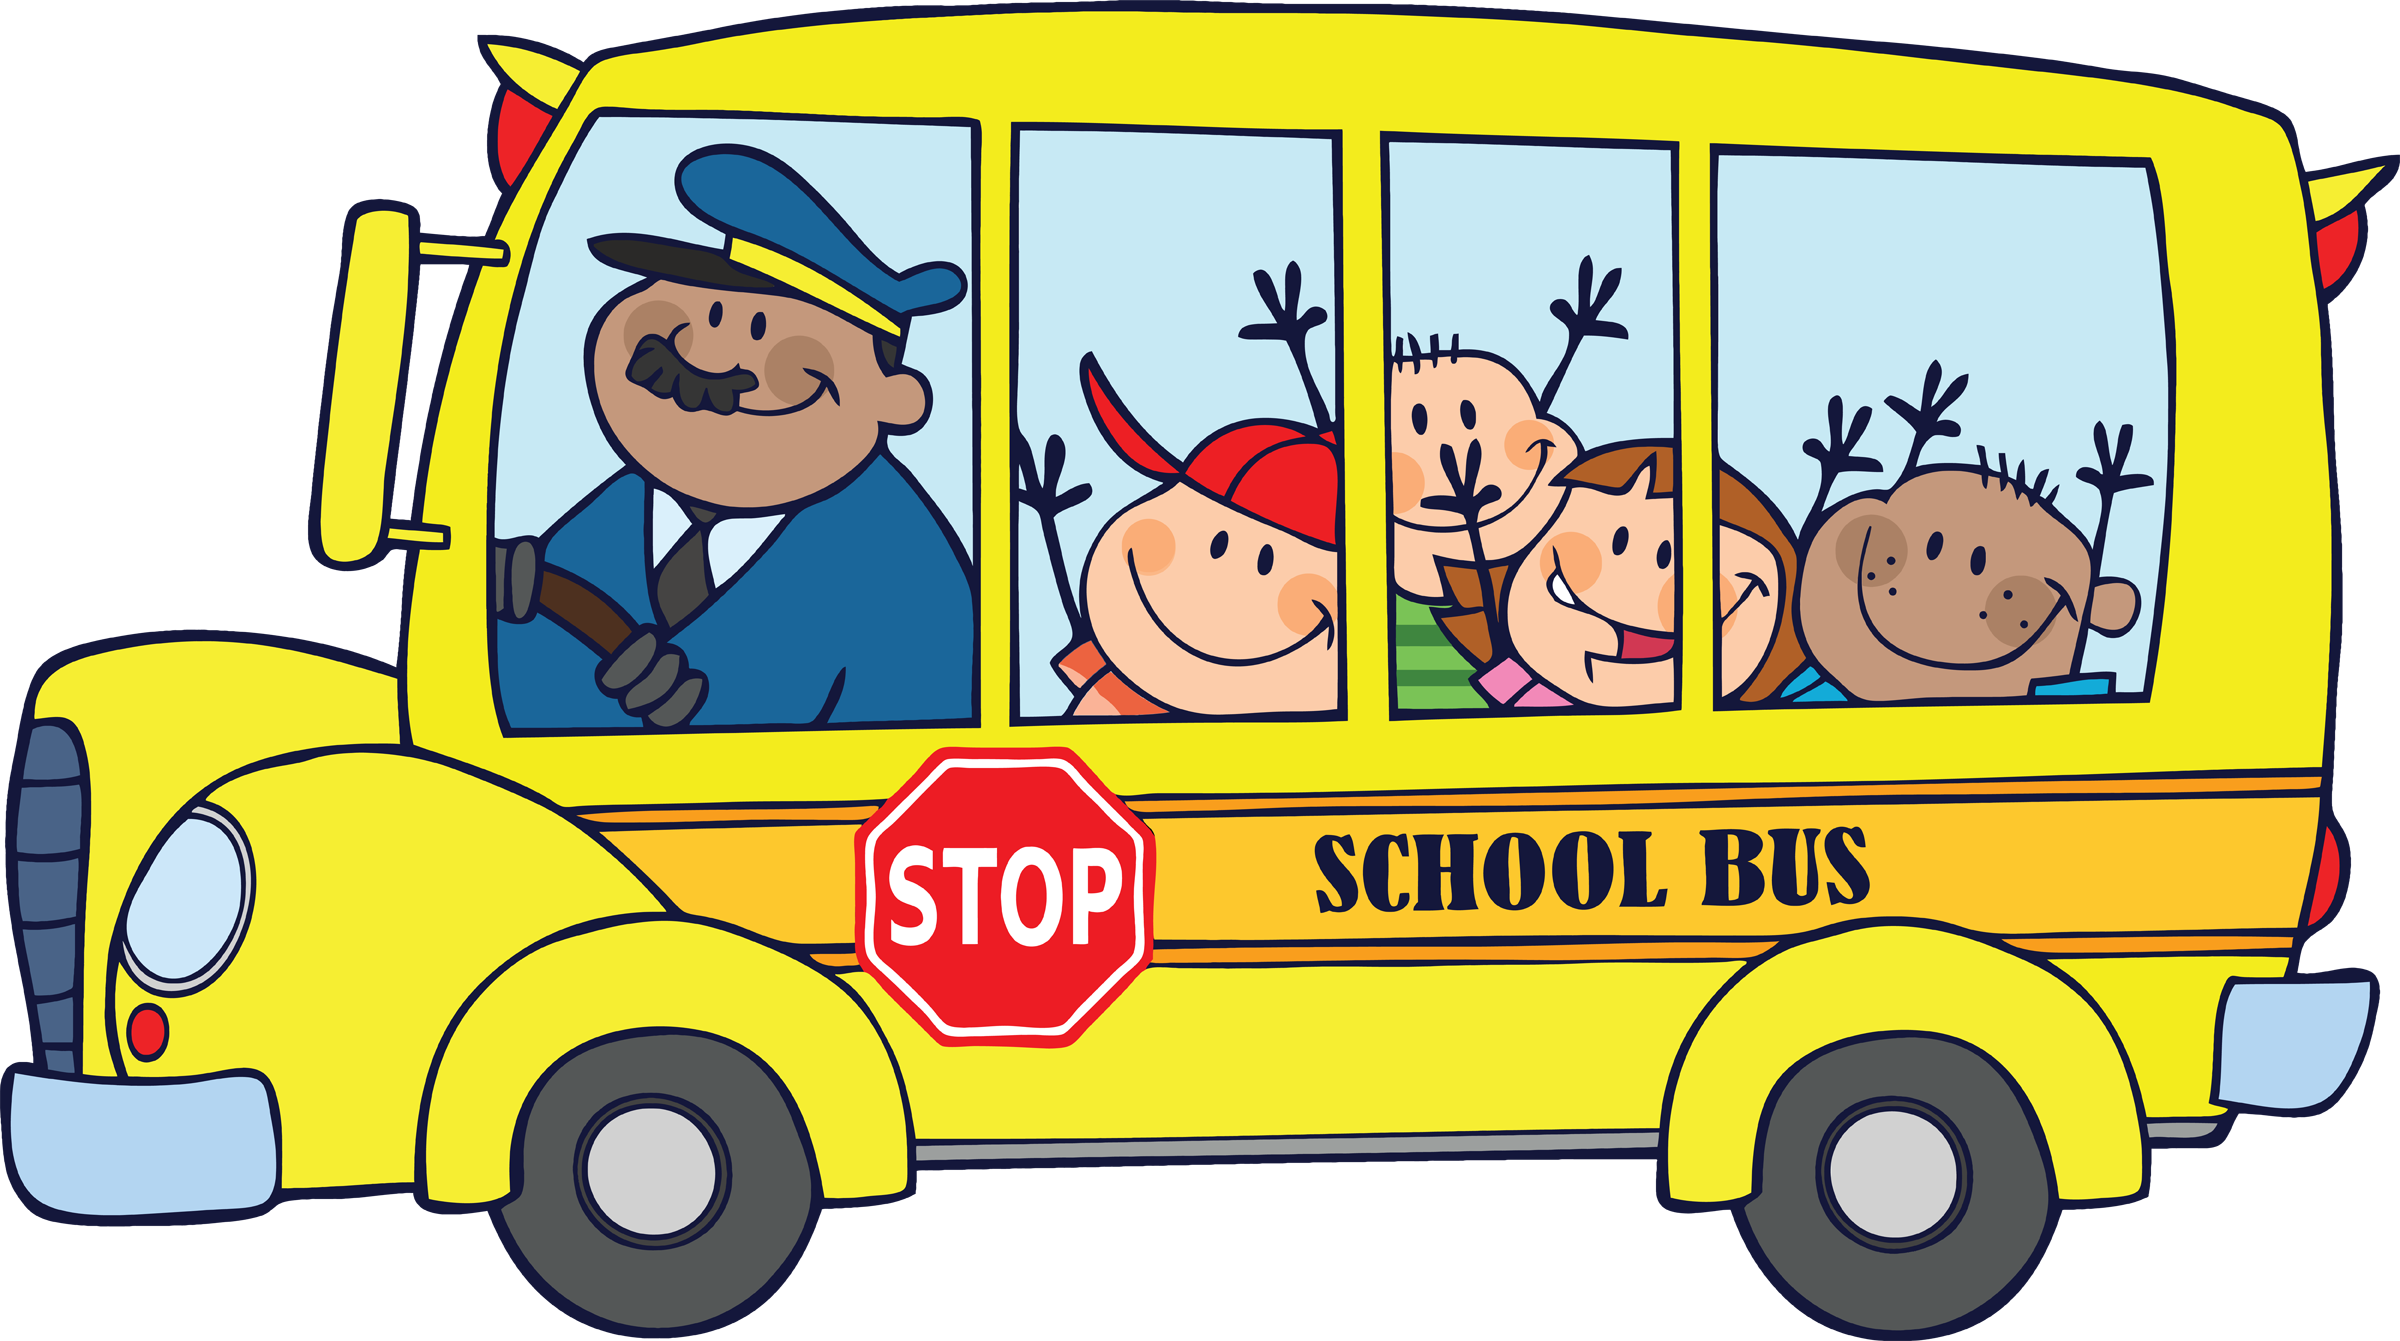 karma bus driver funny pinterest bus driver and karma rh pinterest com Magic School Bus Clip Art Cute School Clip Art